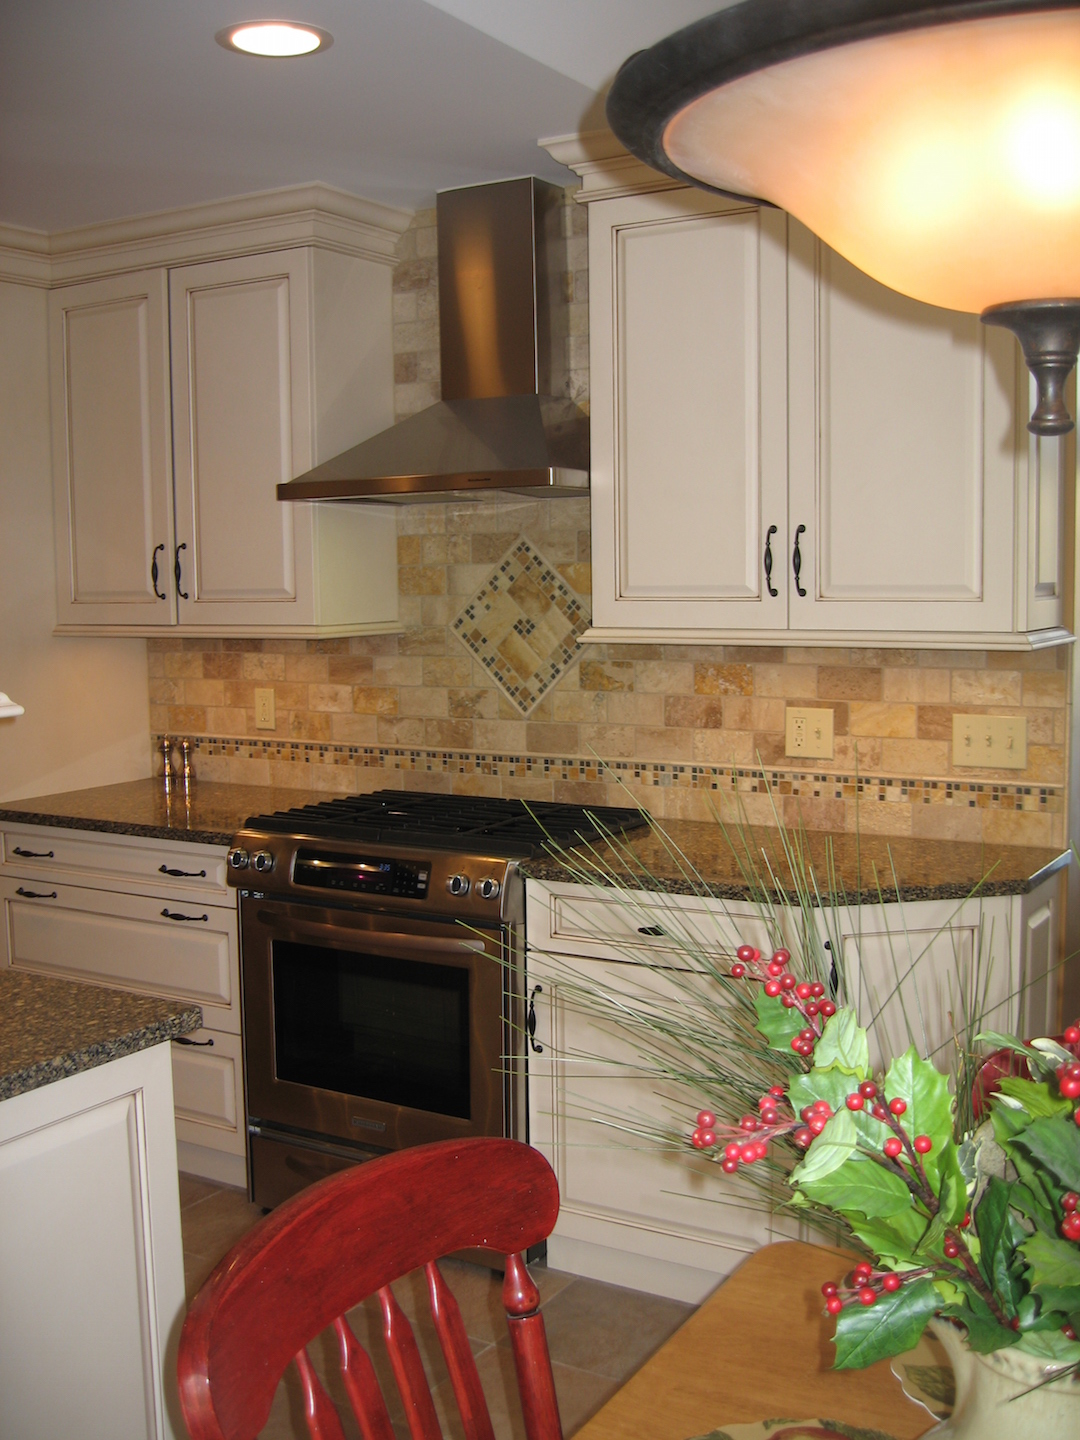 8. AFTER - Kitchen - Right